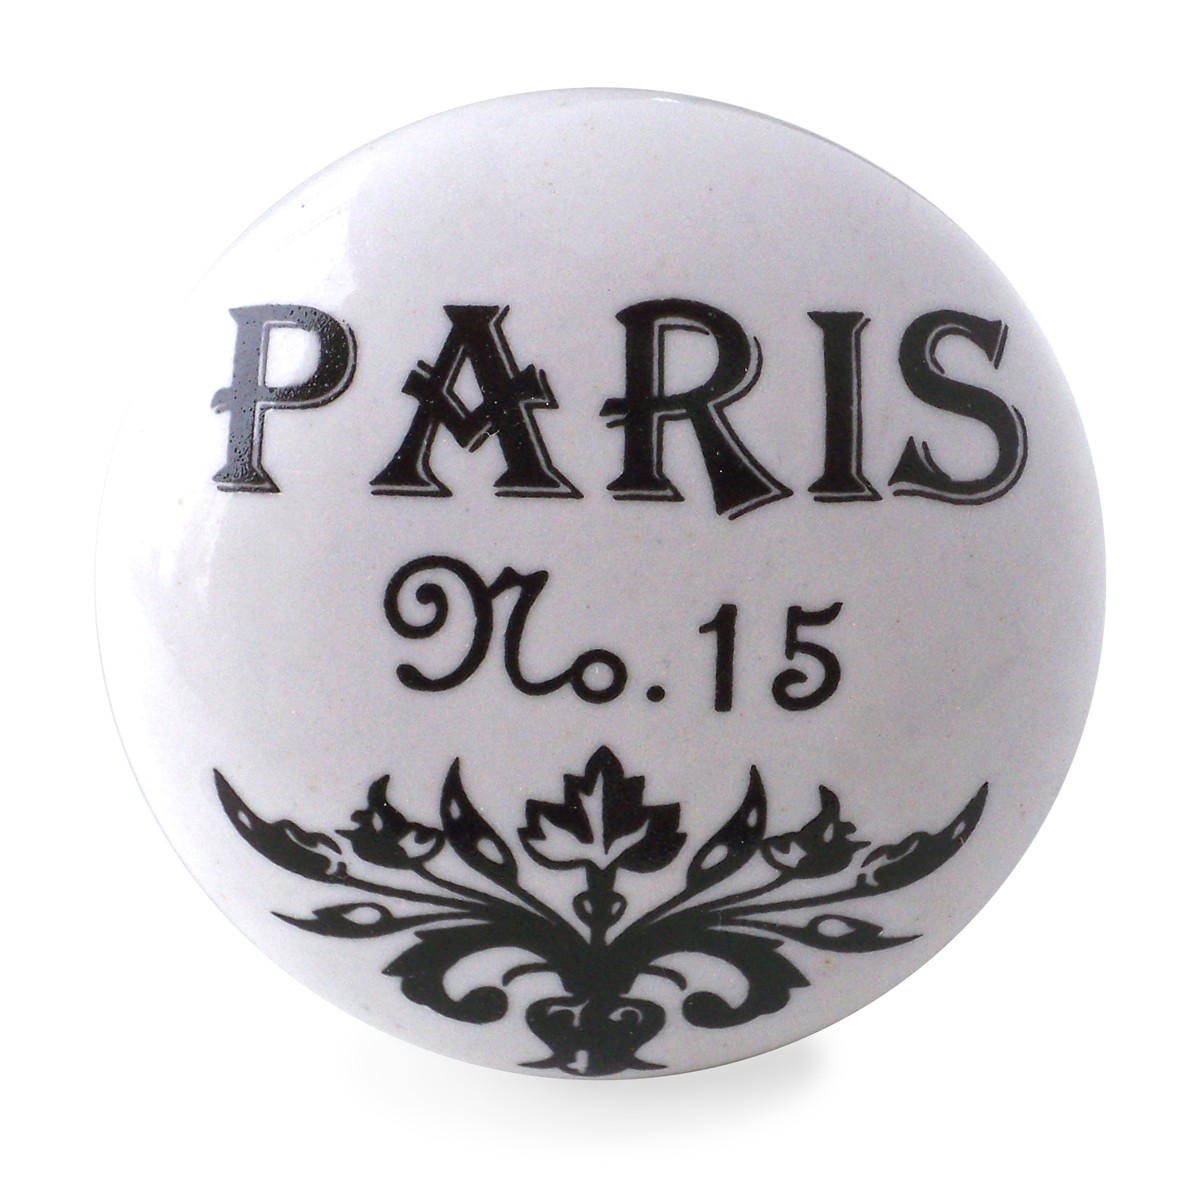 Meuble Paris Bouton De Meuble Paris N 15 Vintage Boutonsdemeubles